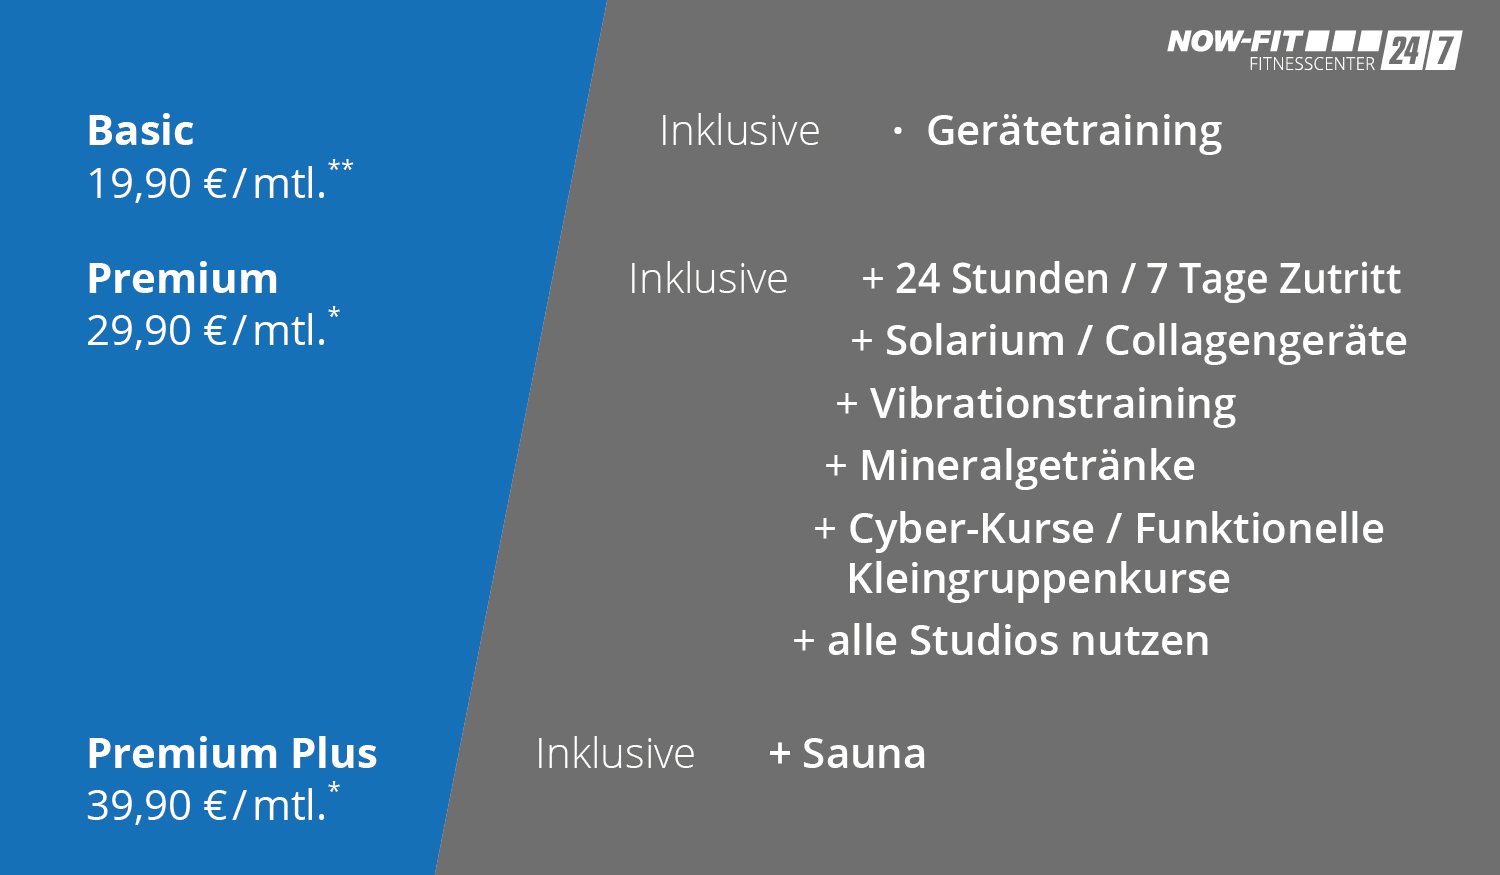 a70e3162ad0dd3 Fitness und Training im NOW FIT Fitnessstudio Raubling - Fitnesscenter